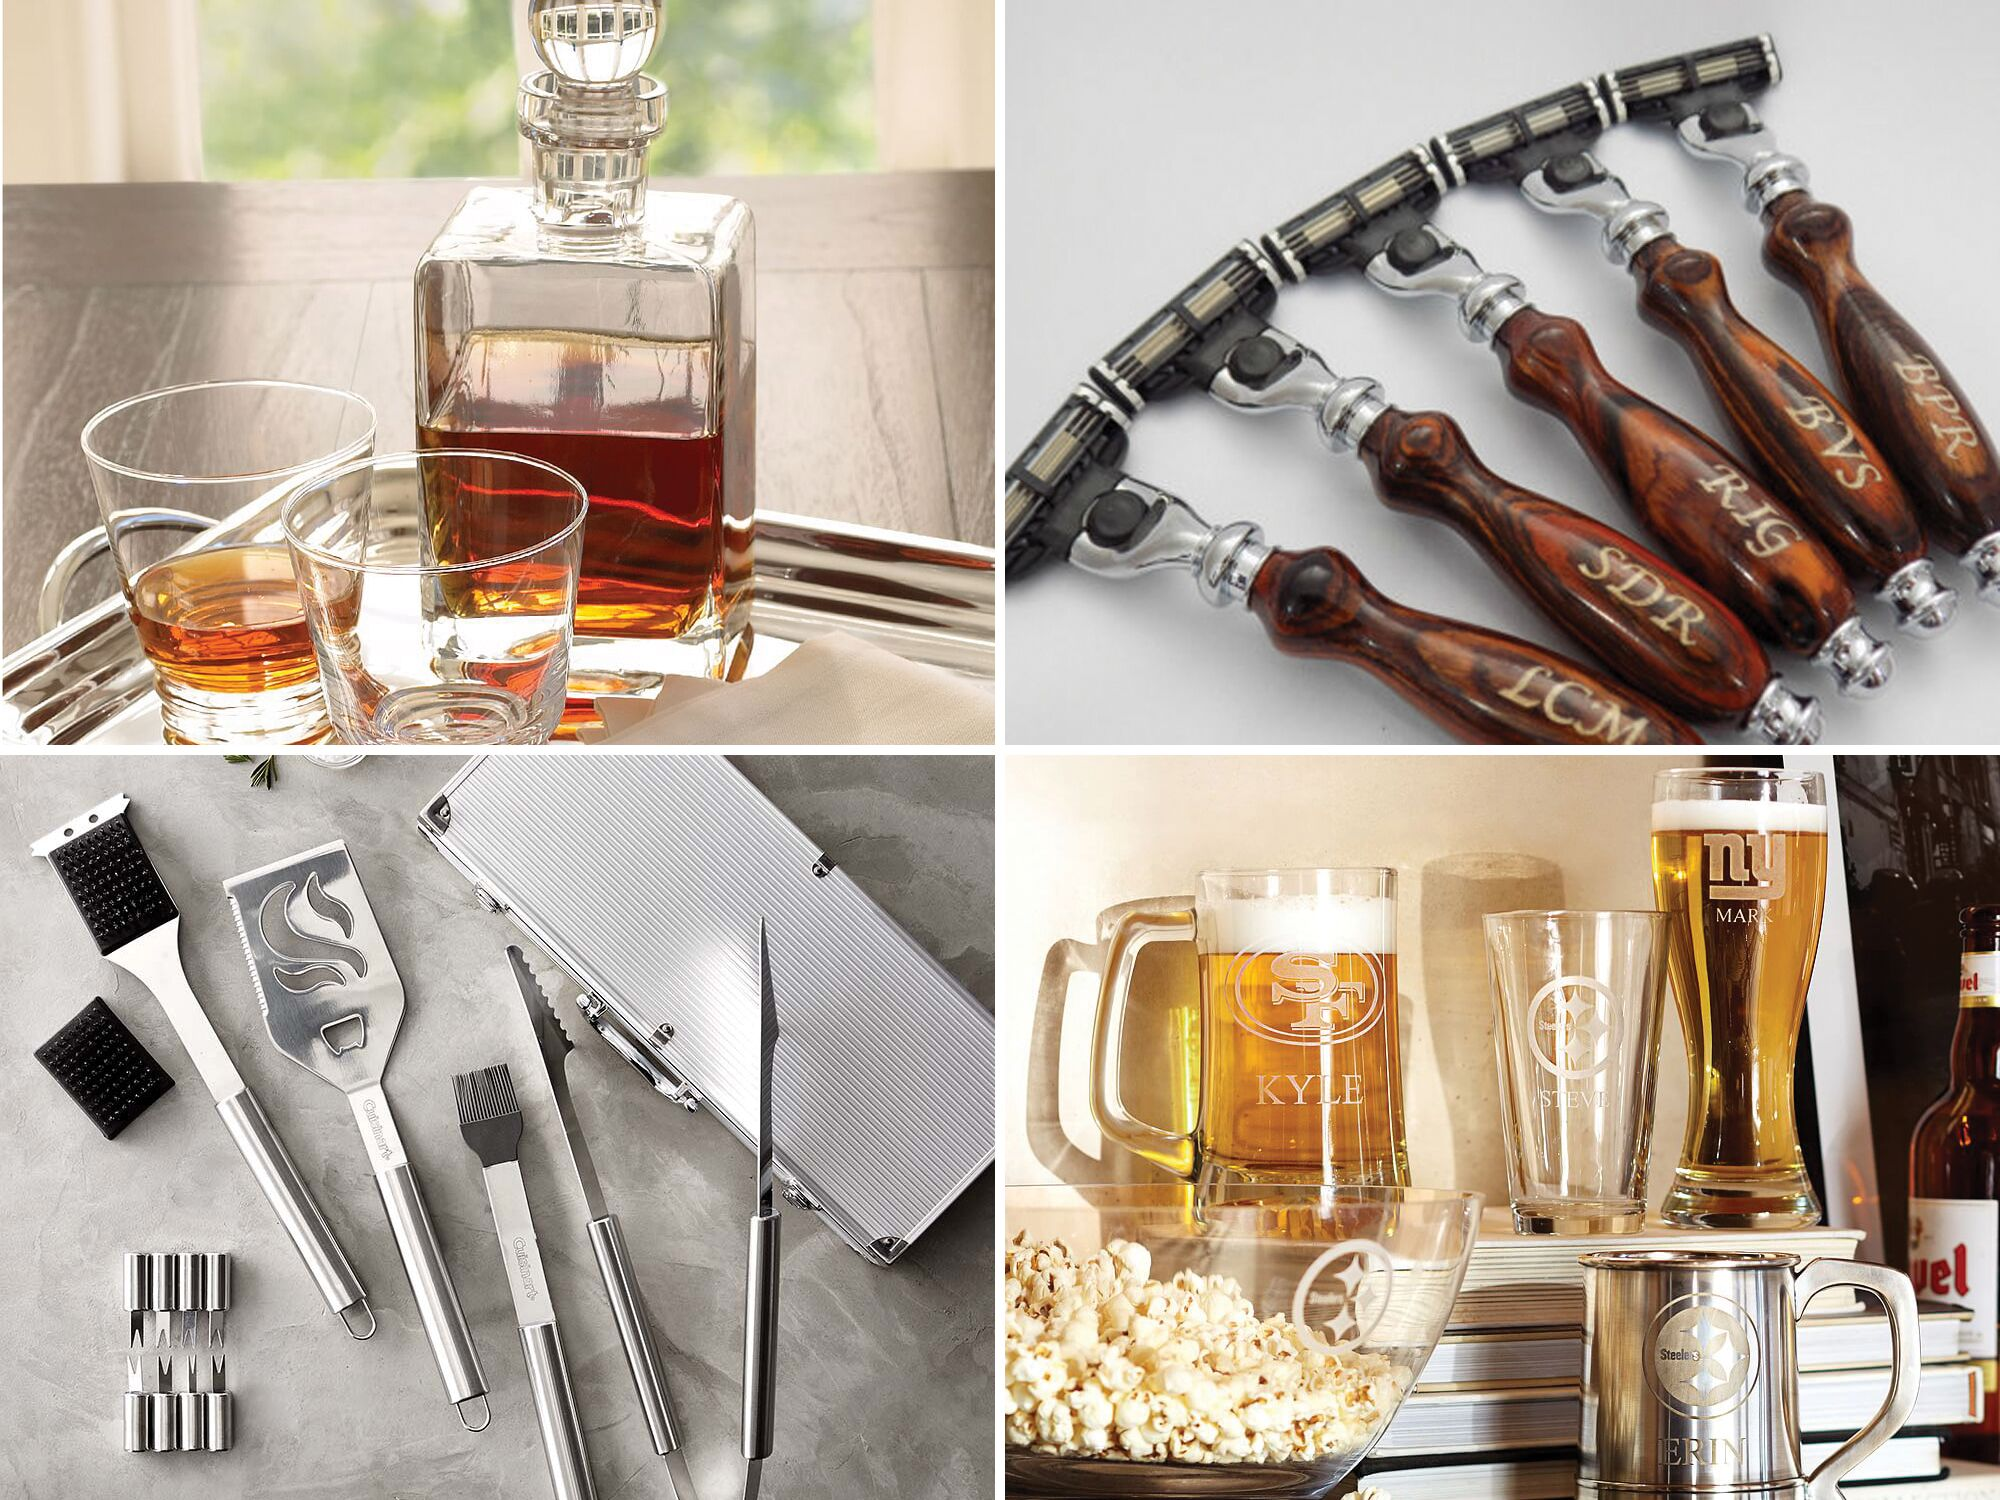 Creative Wedding Gift Ideas To Make: 48 Groomsmen Gift Ideas